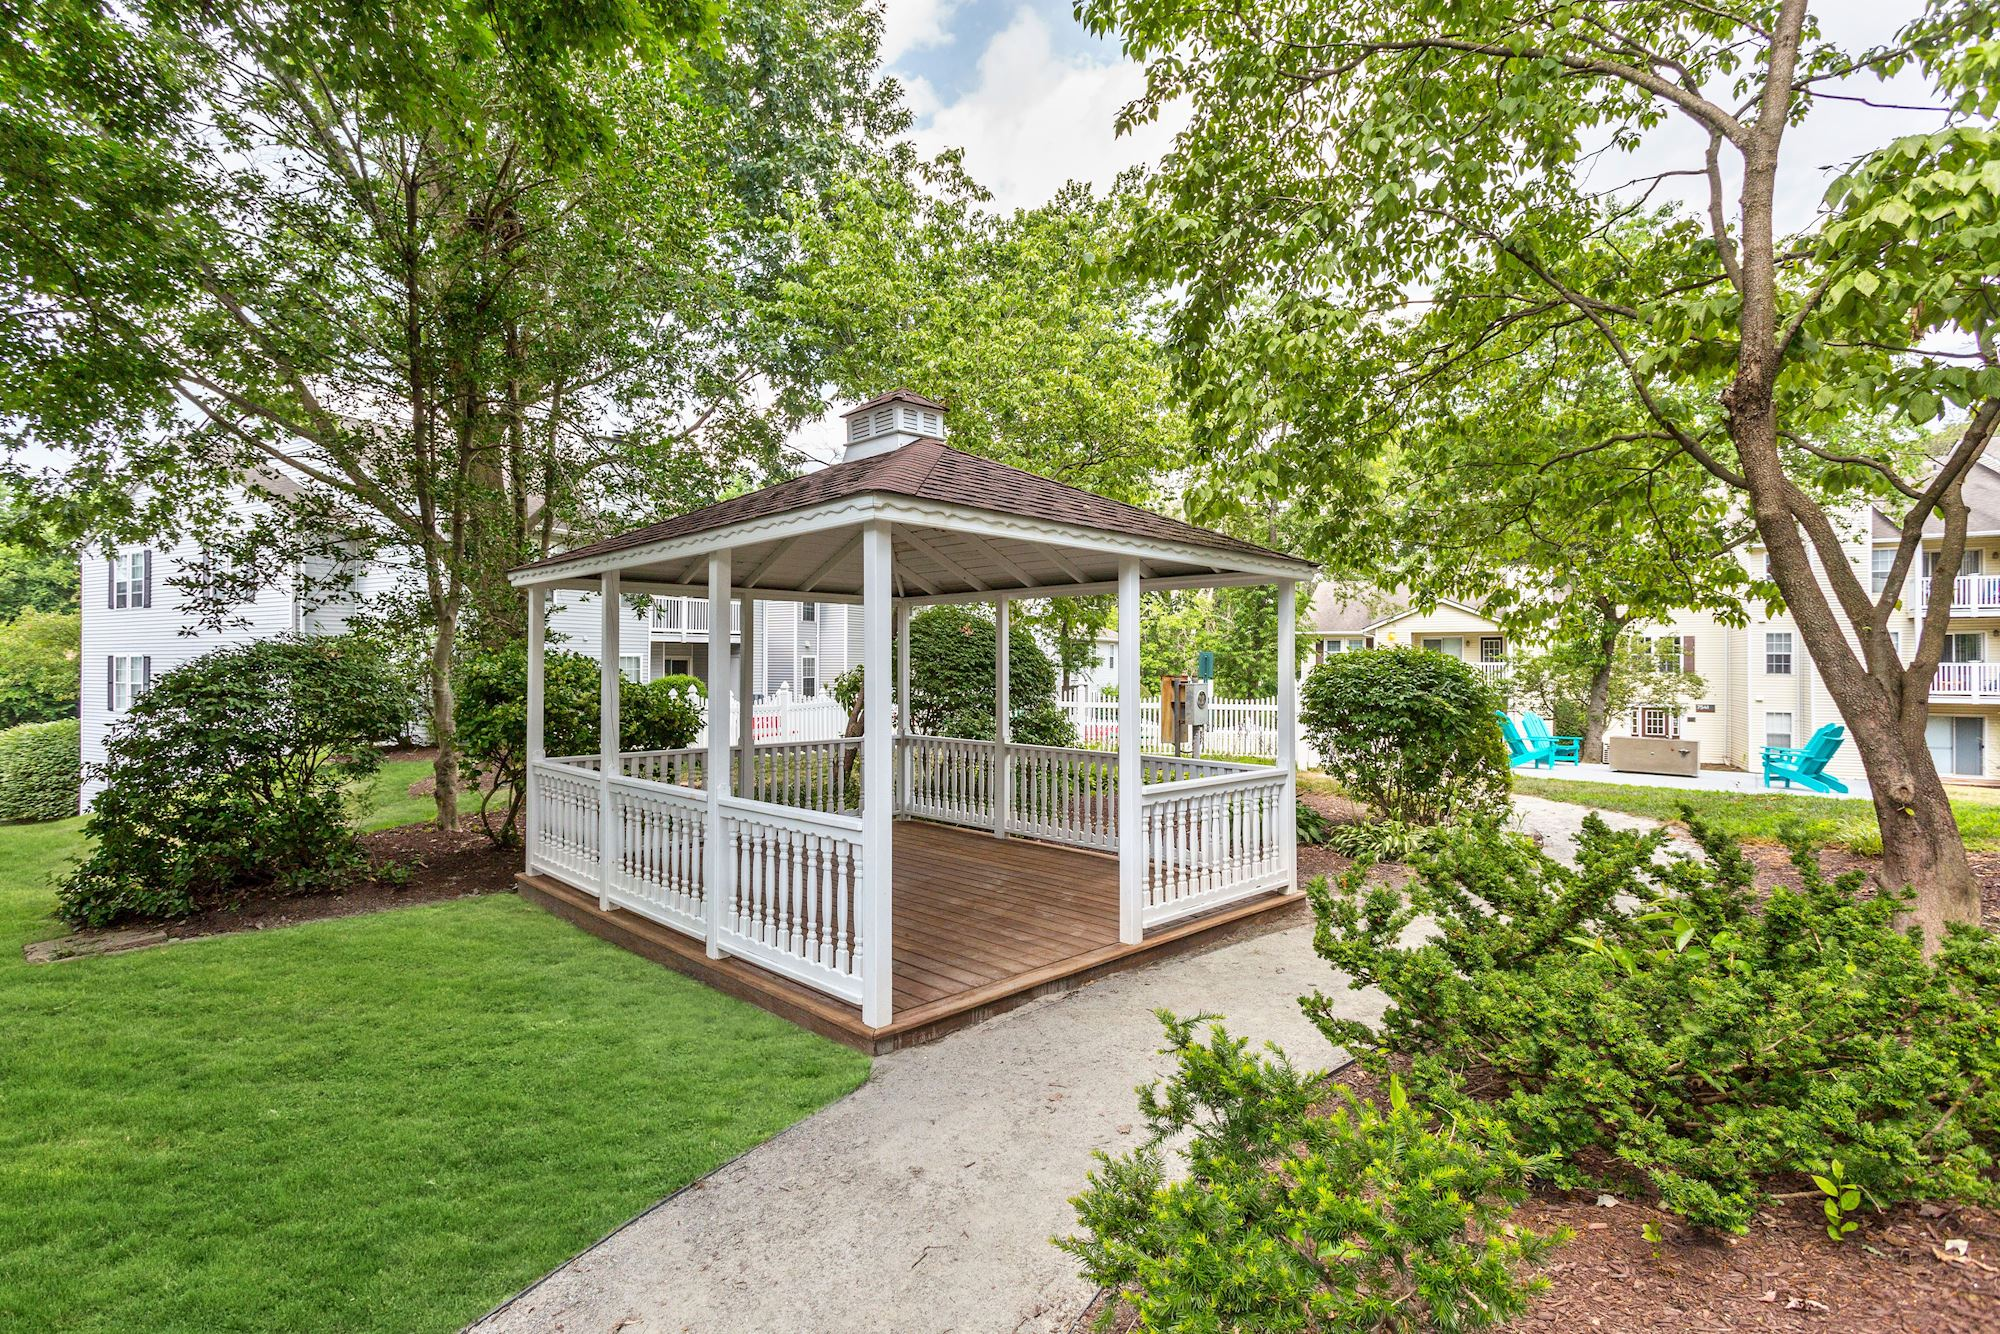 Apartments for Rent with Gazebo- The Hamilton at Kings Place